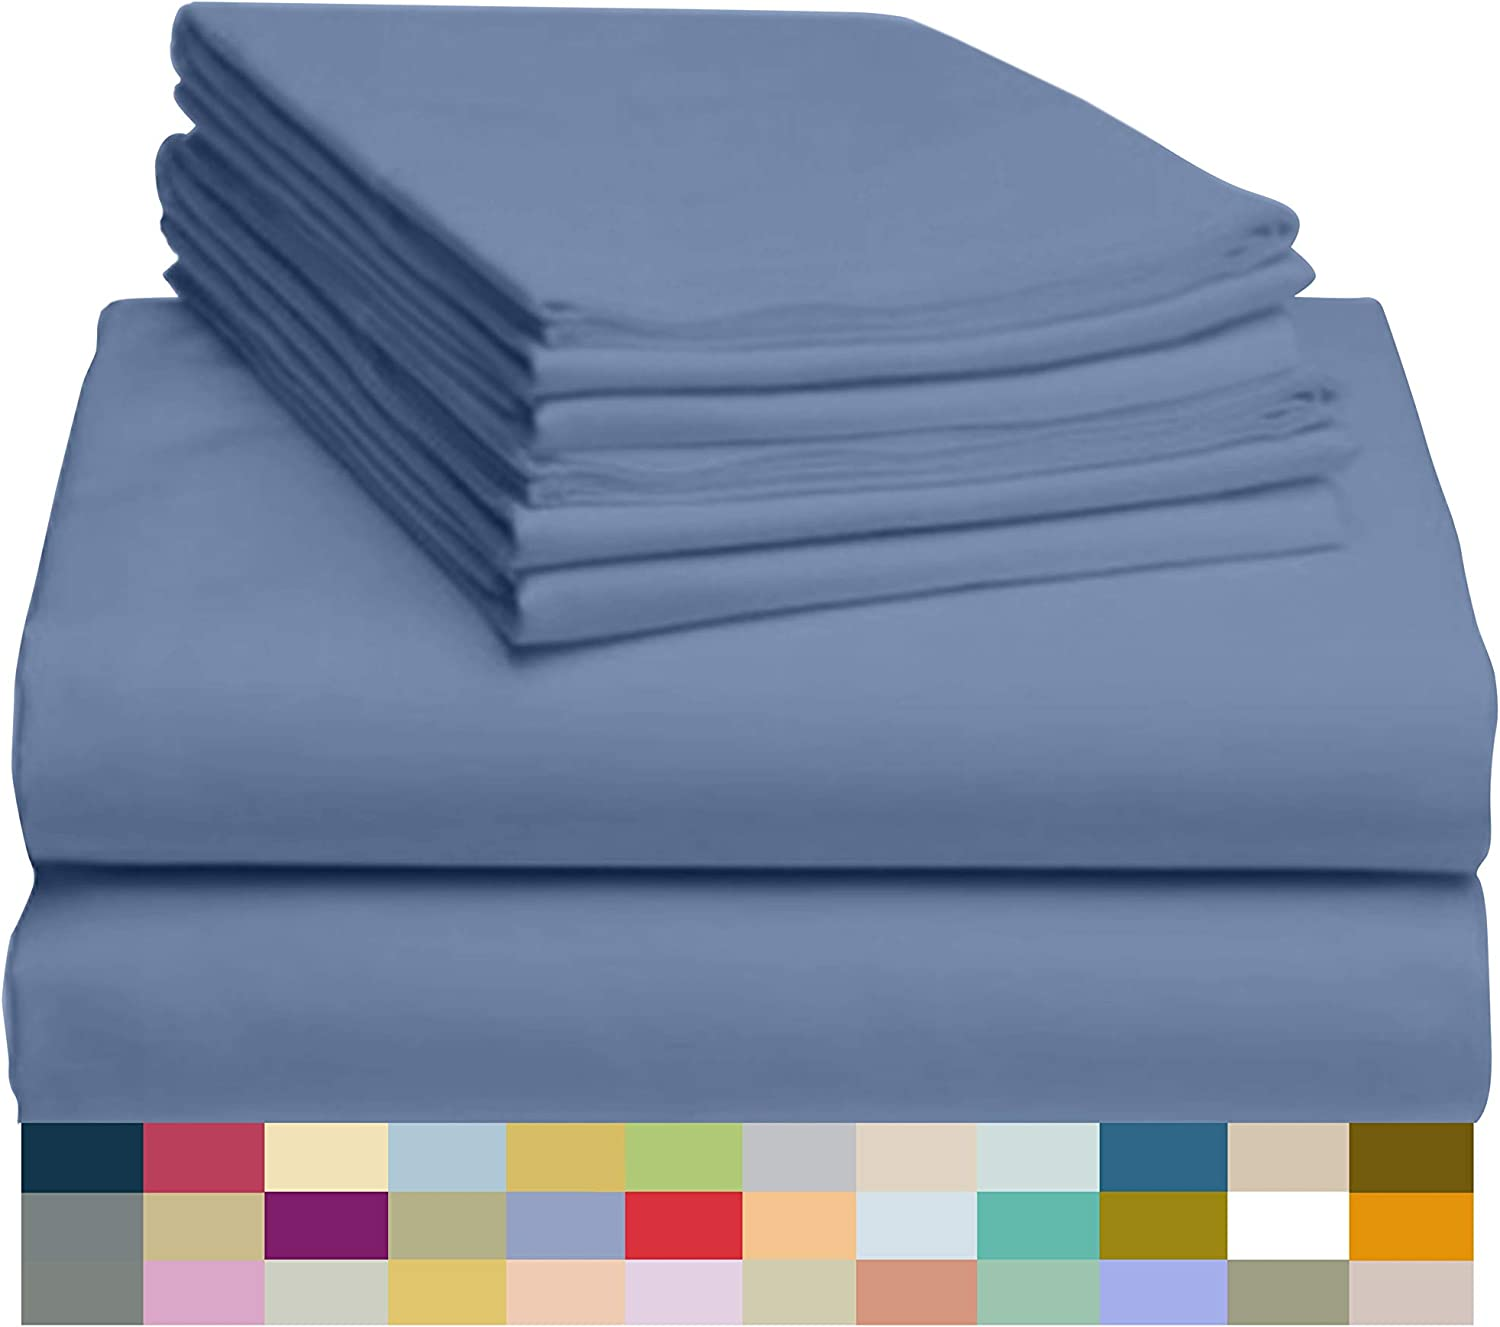 "LuxClub 6 PC Sheet Set Bamboo Sheets Deep Pockets 18"" Eco Friendly Wrinkle Free Sheets Hypoallergenic Anti-Bacteria Machine Washable Hotel Bedding Silky Soft - Oxford California King"